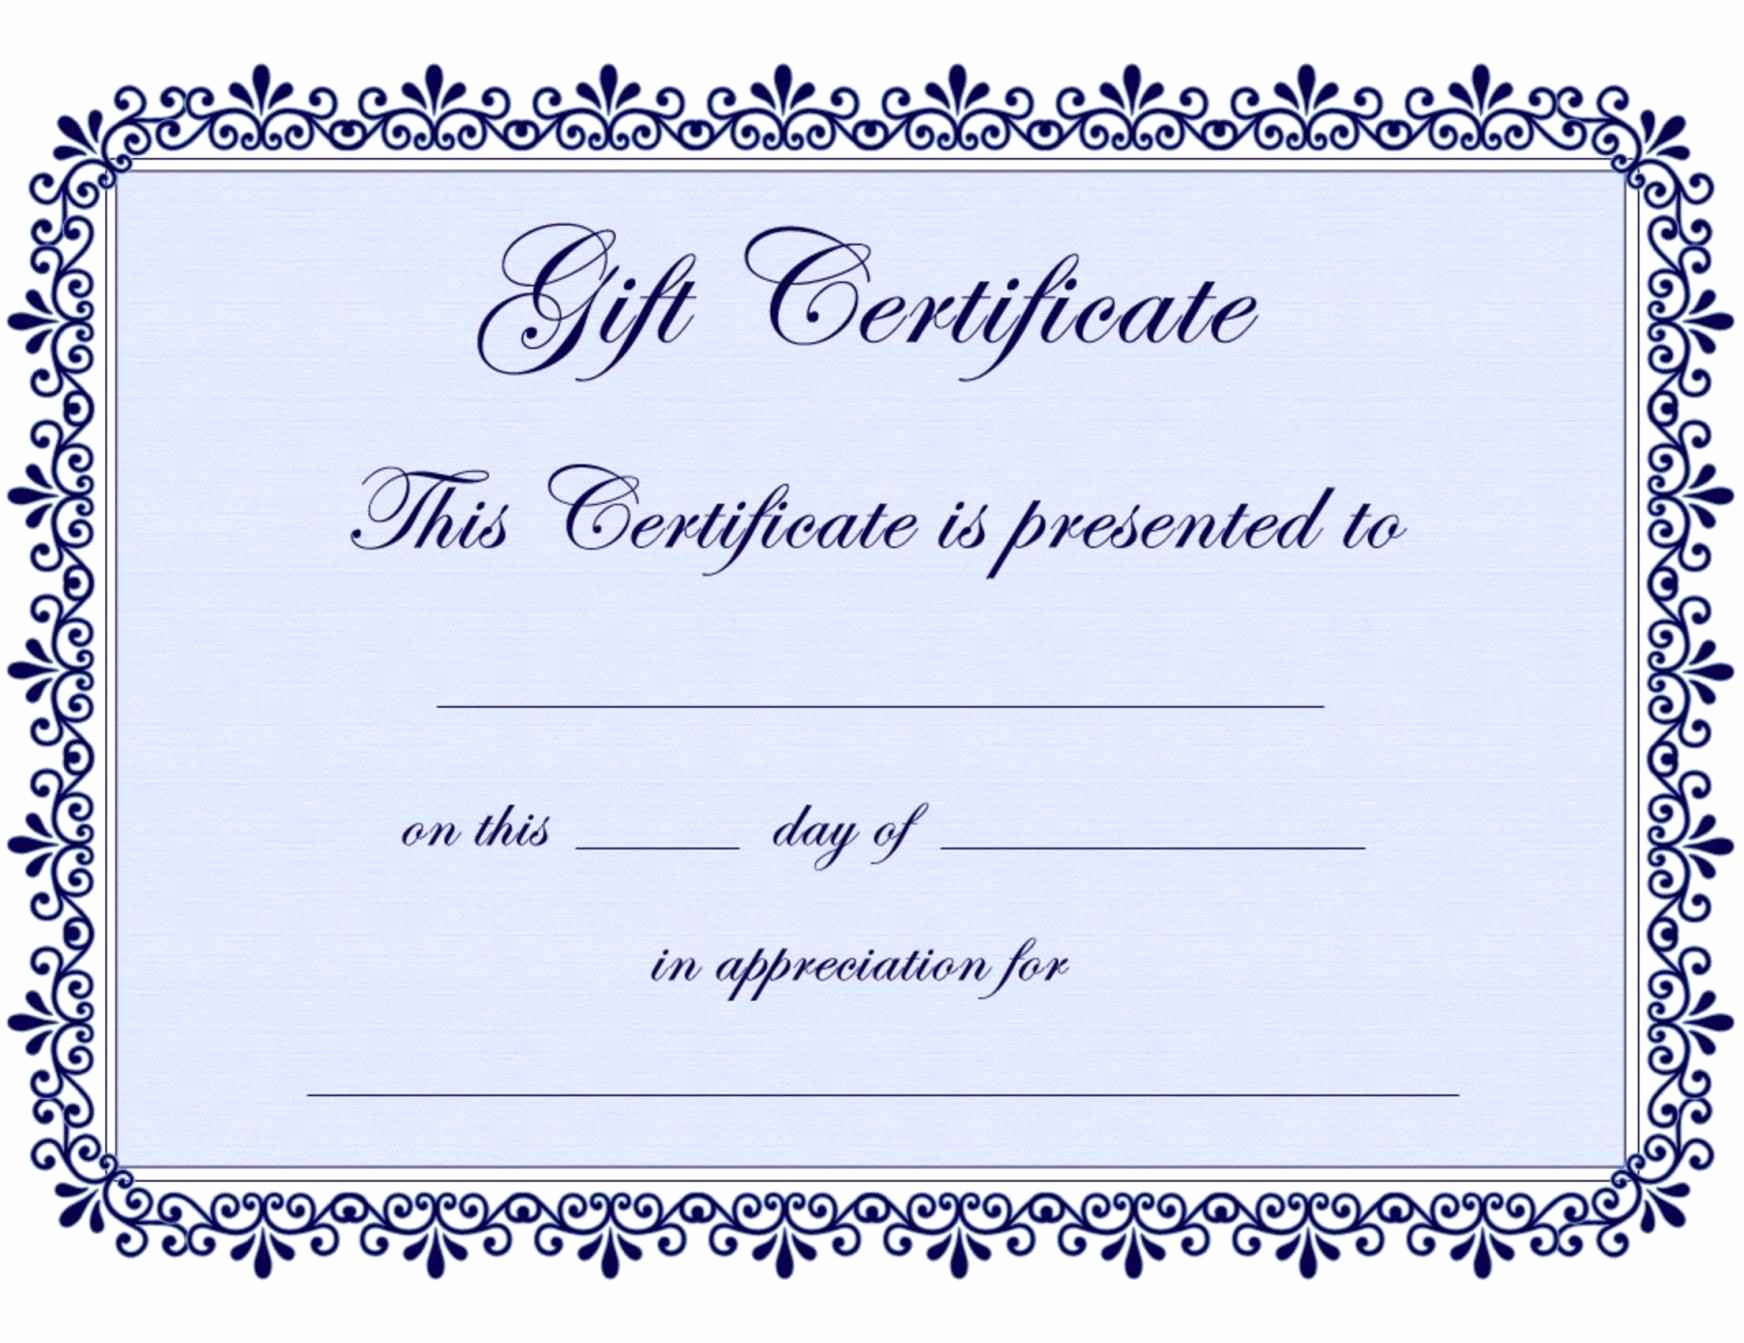 Free Printable Gift Certificate Templates Best Of Free Printable Gift Certificate Template Word Template